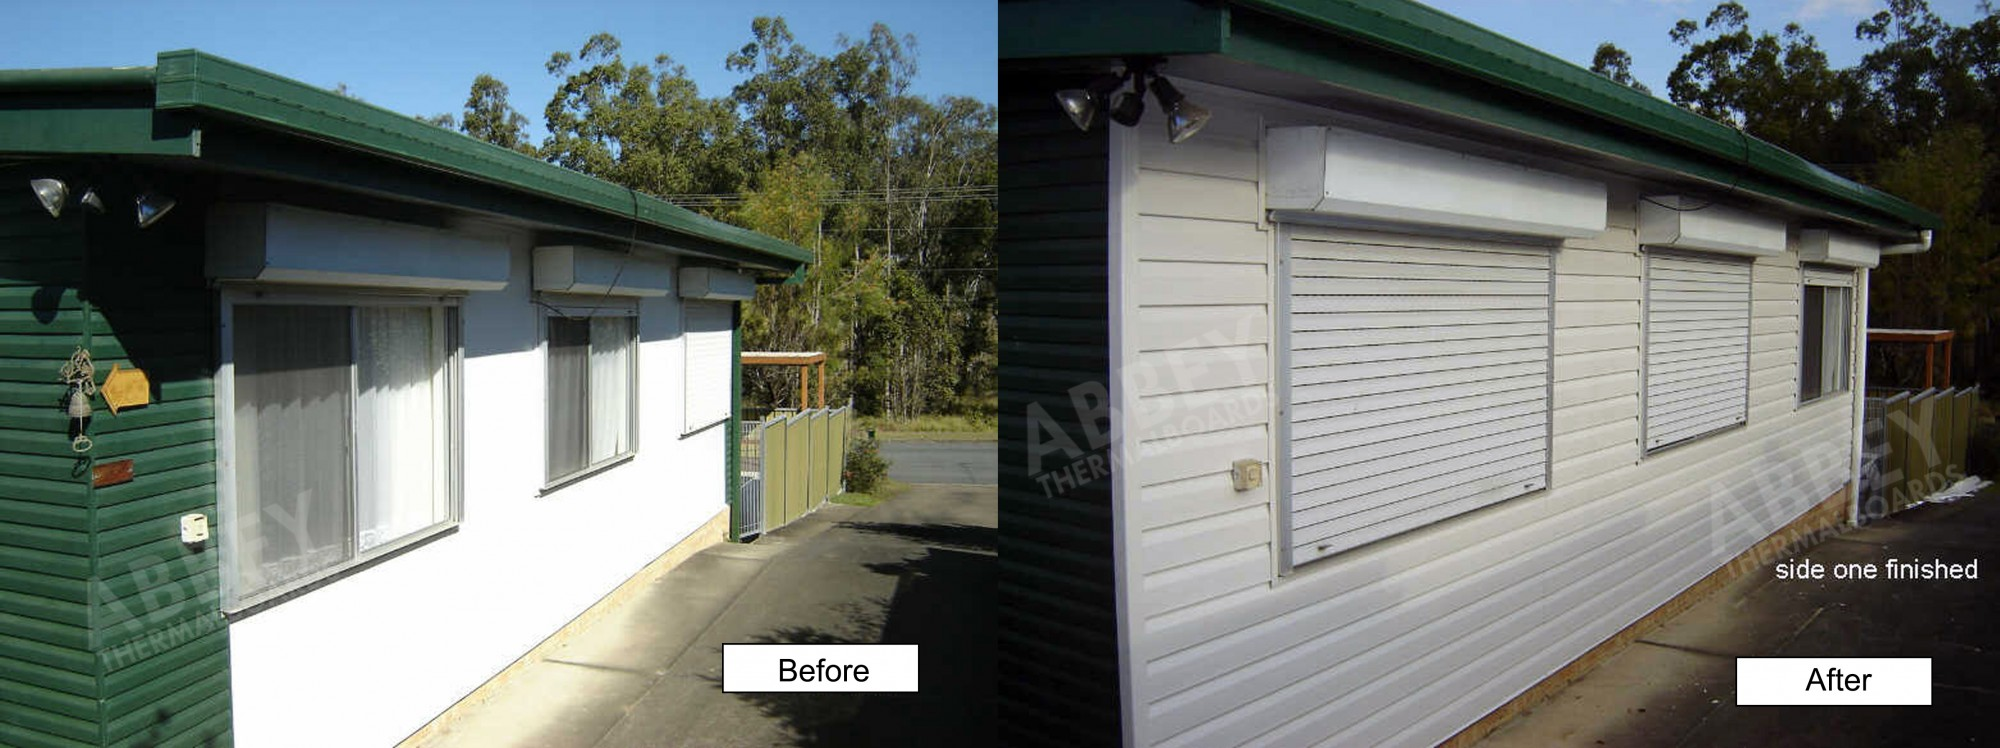 Side before and after picture of cladding completed on a home owner's shed.